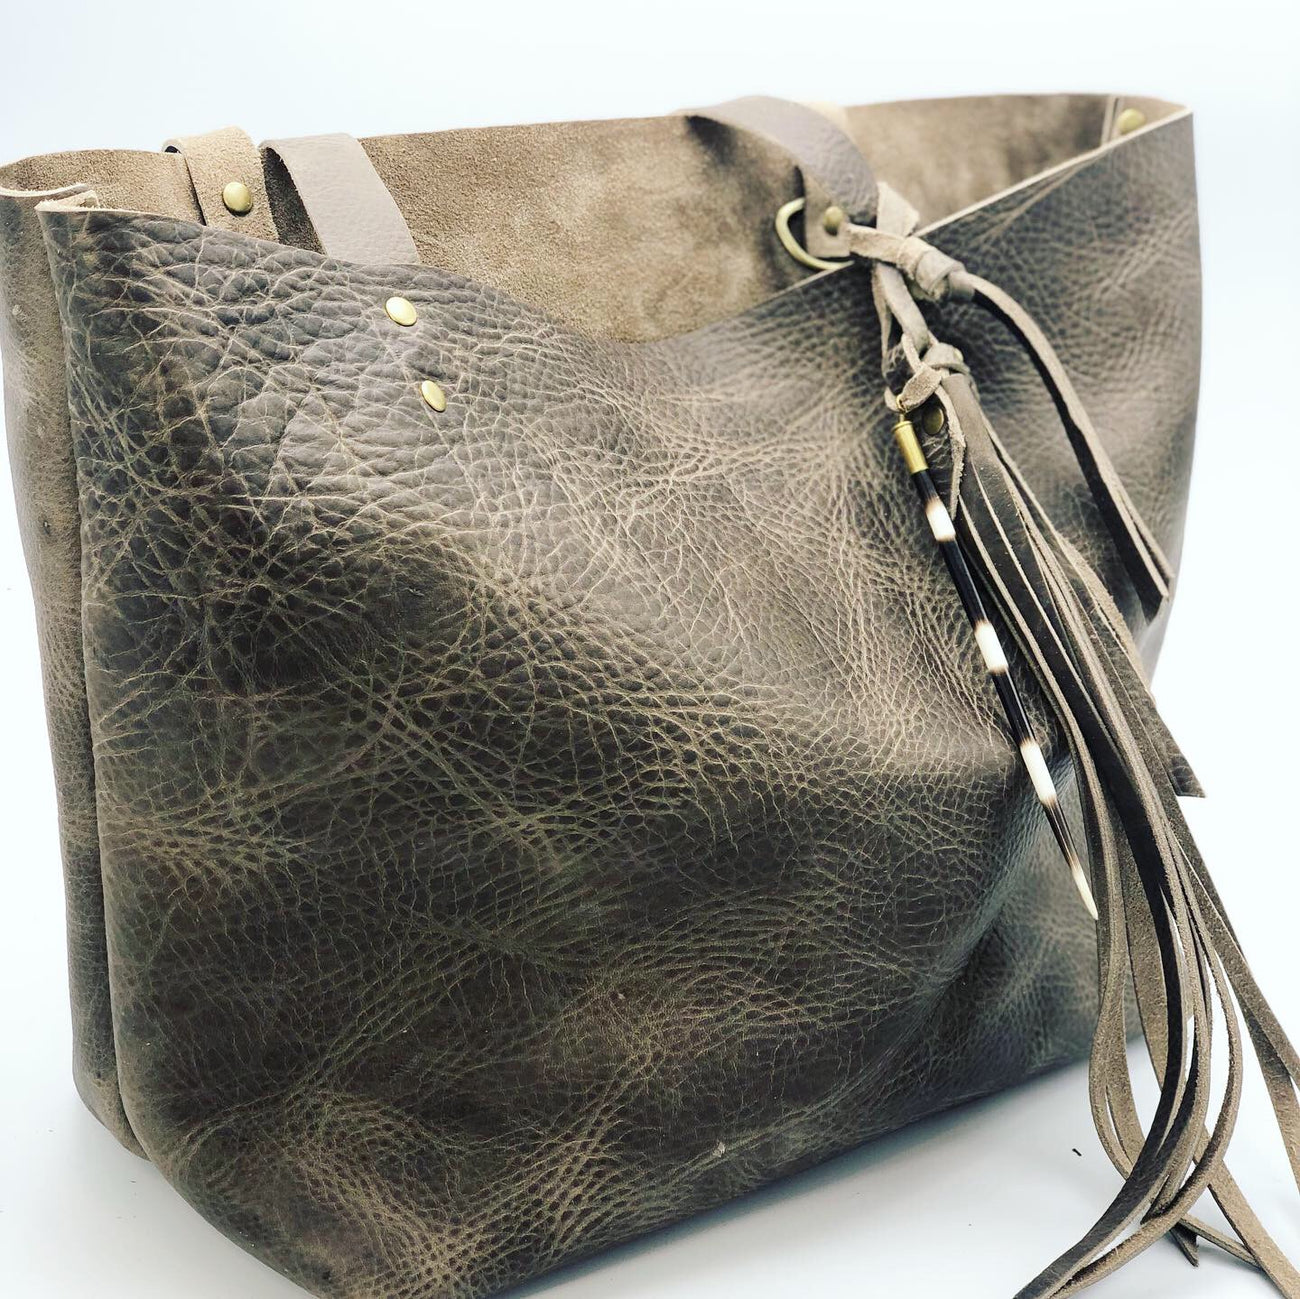 Crunchy Diva Designs Leather Tote Bag